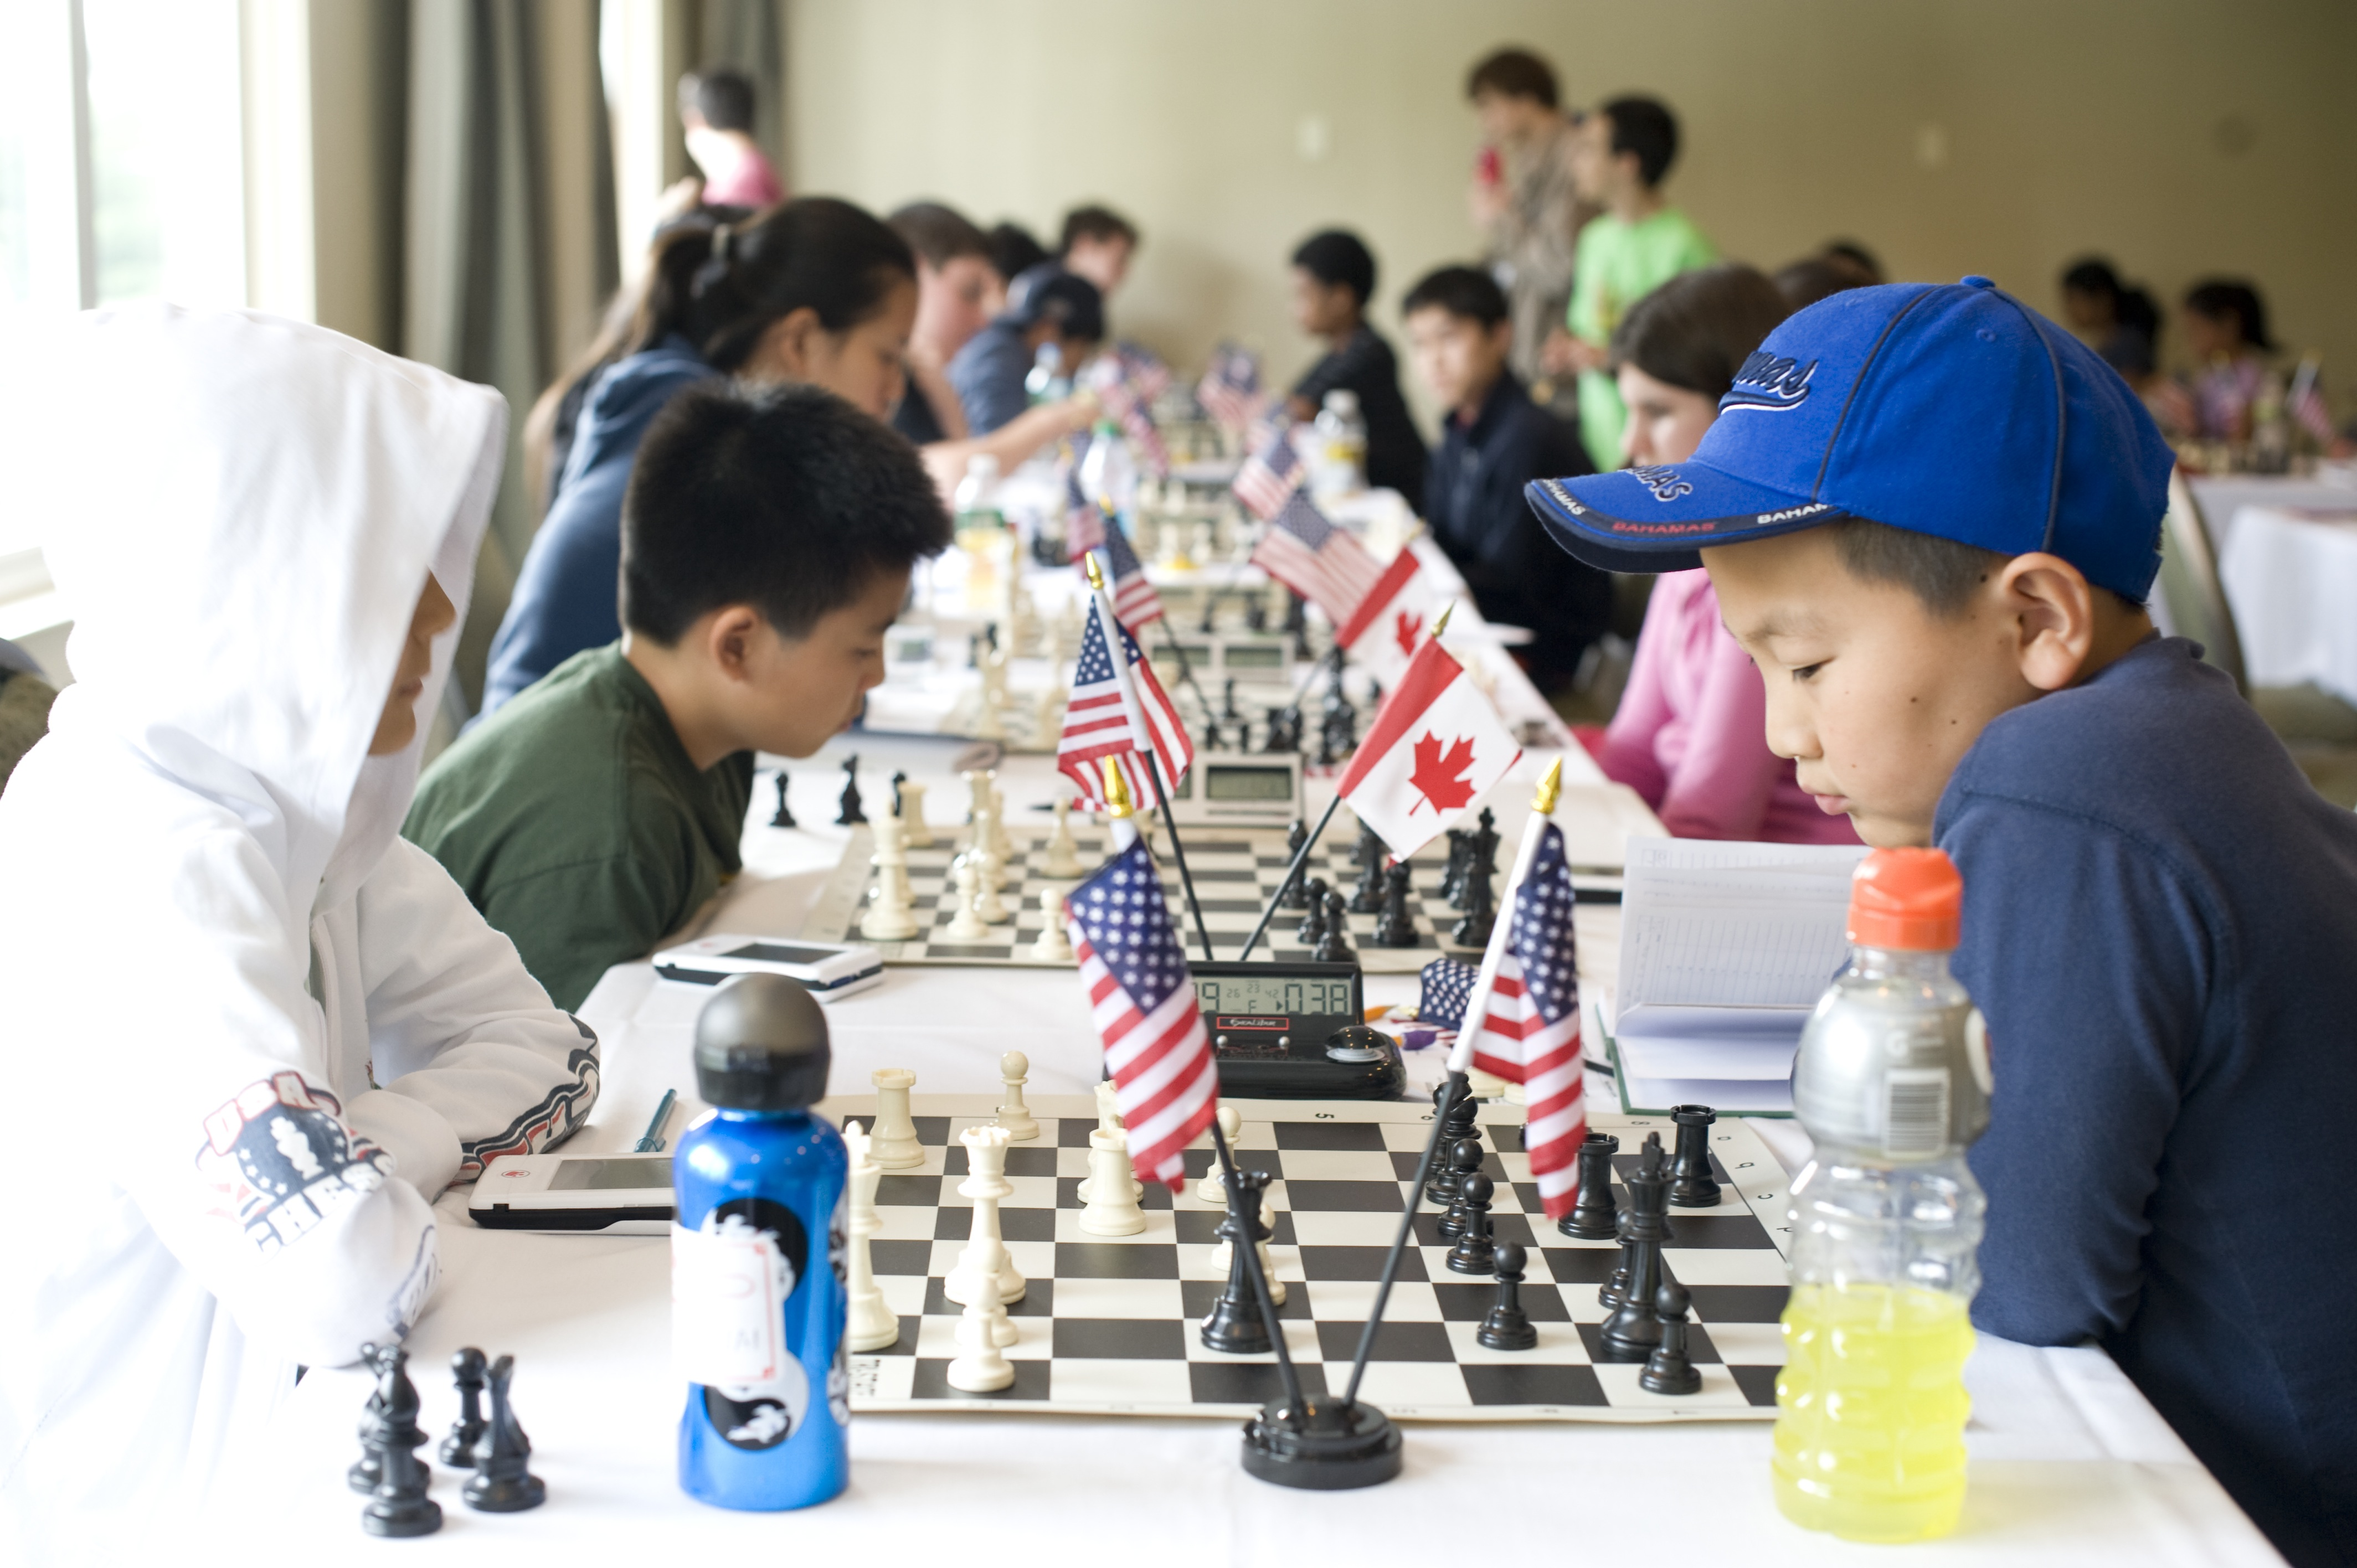 Chessplayers at the 2011 North American Youth Championship, Tarrytown, New York. Photo Credit Dora Leticia ©